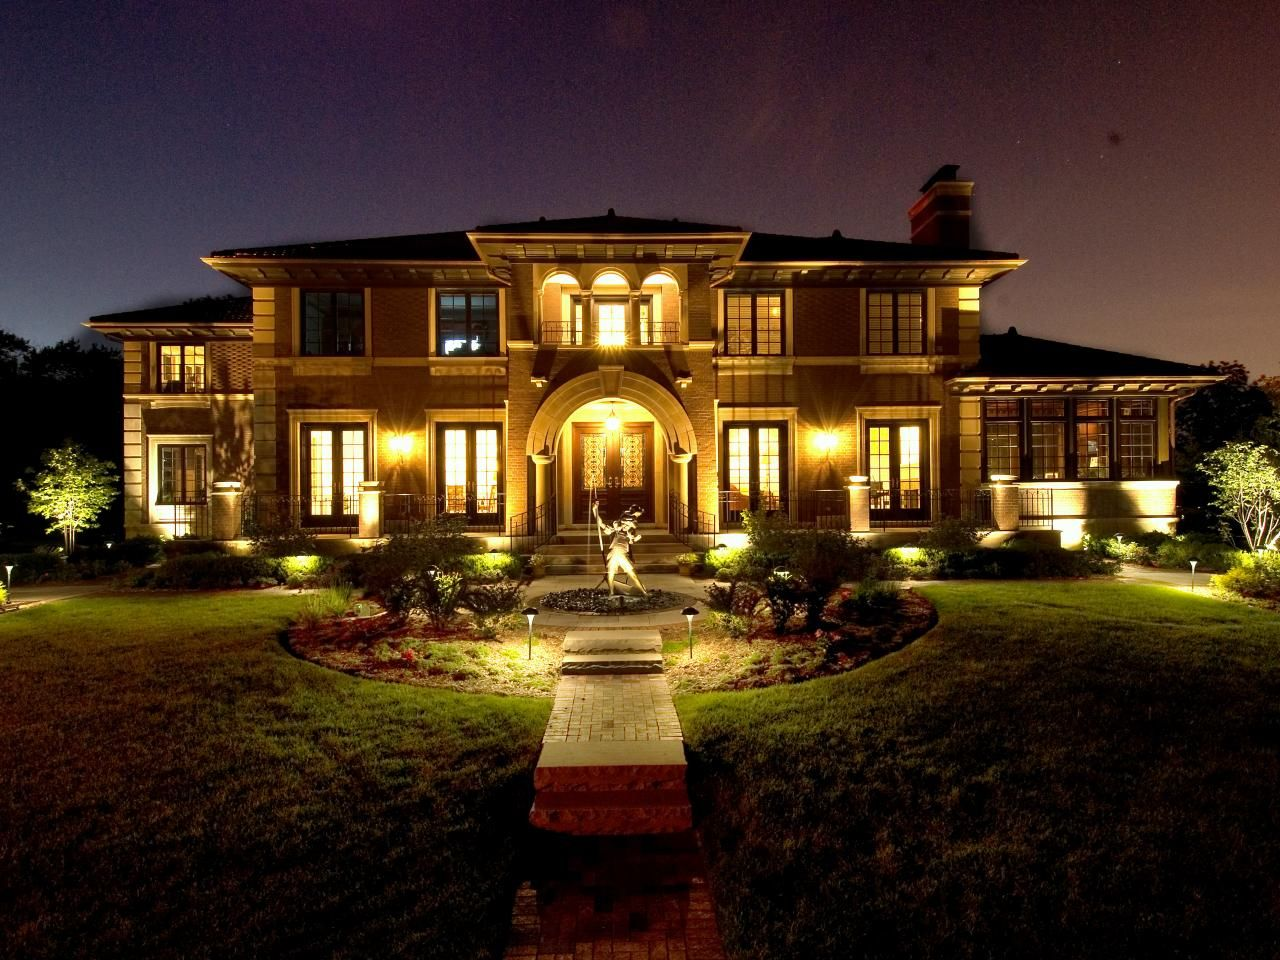 22 Landscape Lighting Ideas Electrical Wiring Ceiling Fan And Diy Home Network How Tos Light Fixtures Fans Safety